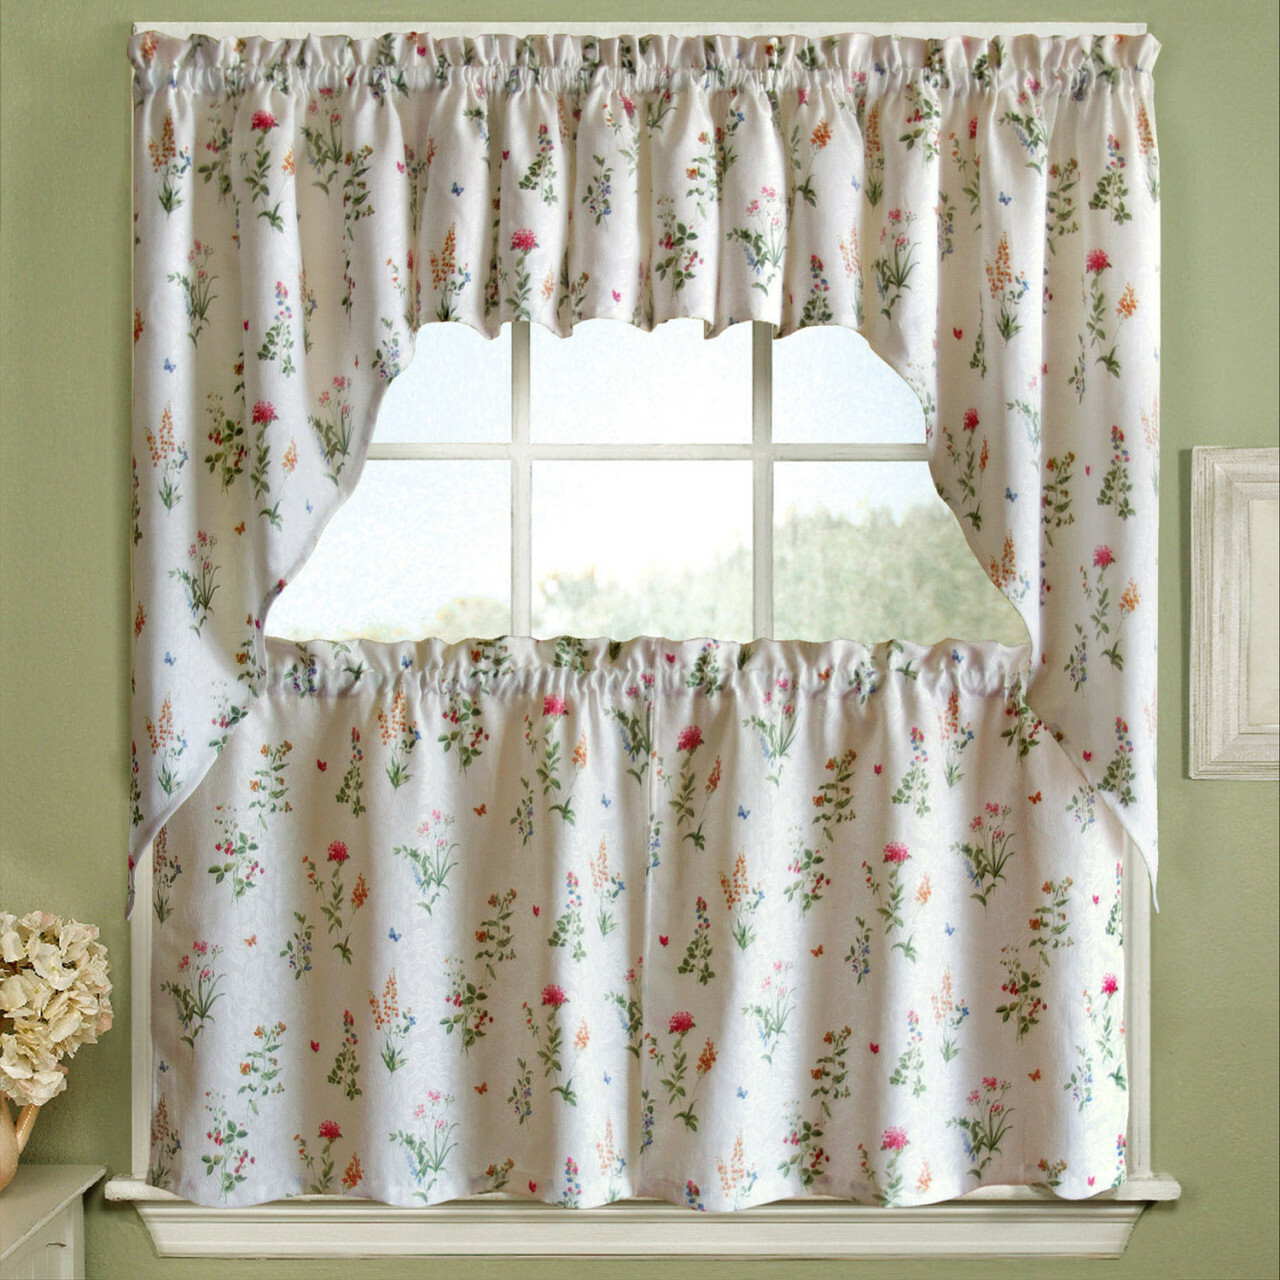 White Kitchen Curtains – V9oj Pertaining To Microfiber 3 Piece Kitchen Curtain Valance And Tiers Sets (View 19 of 20)